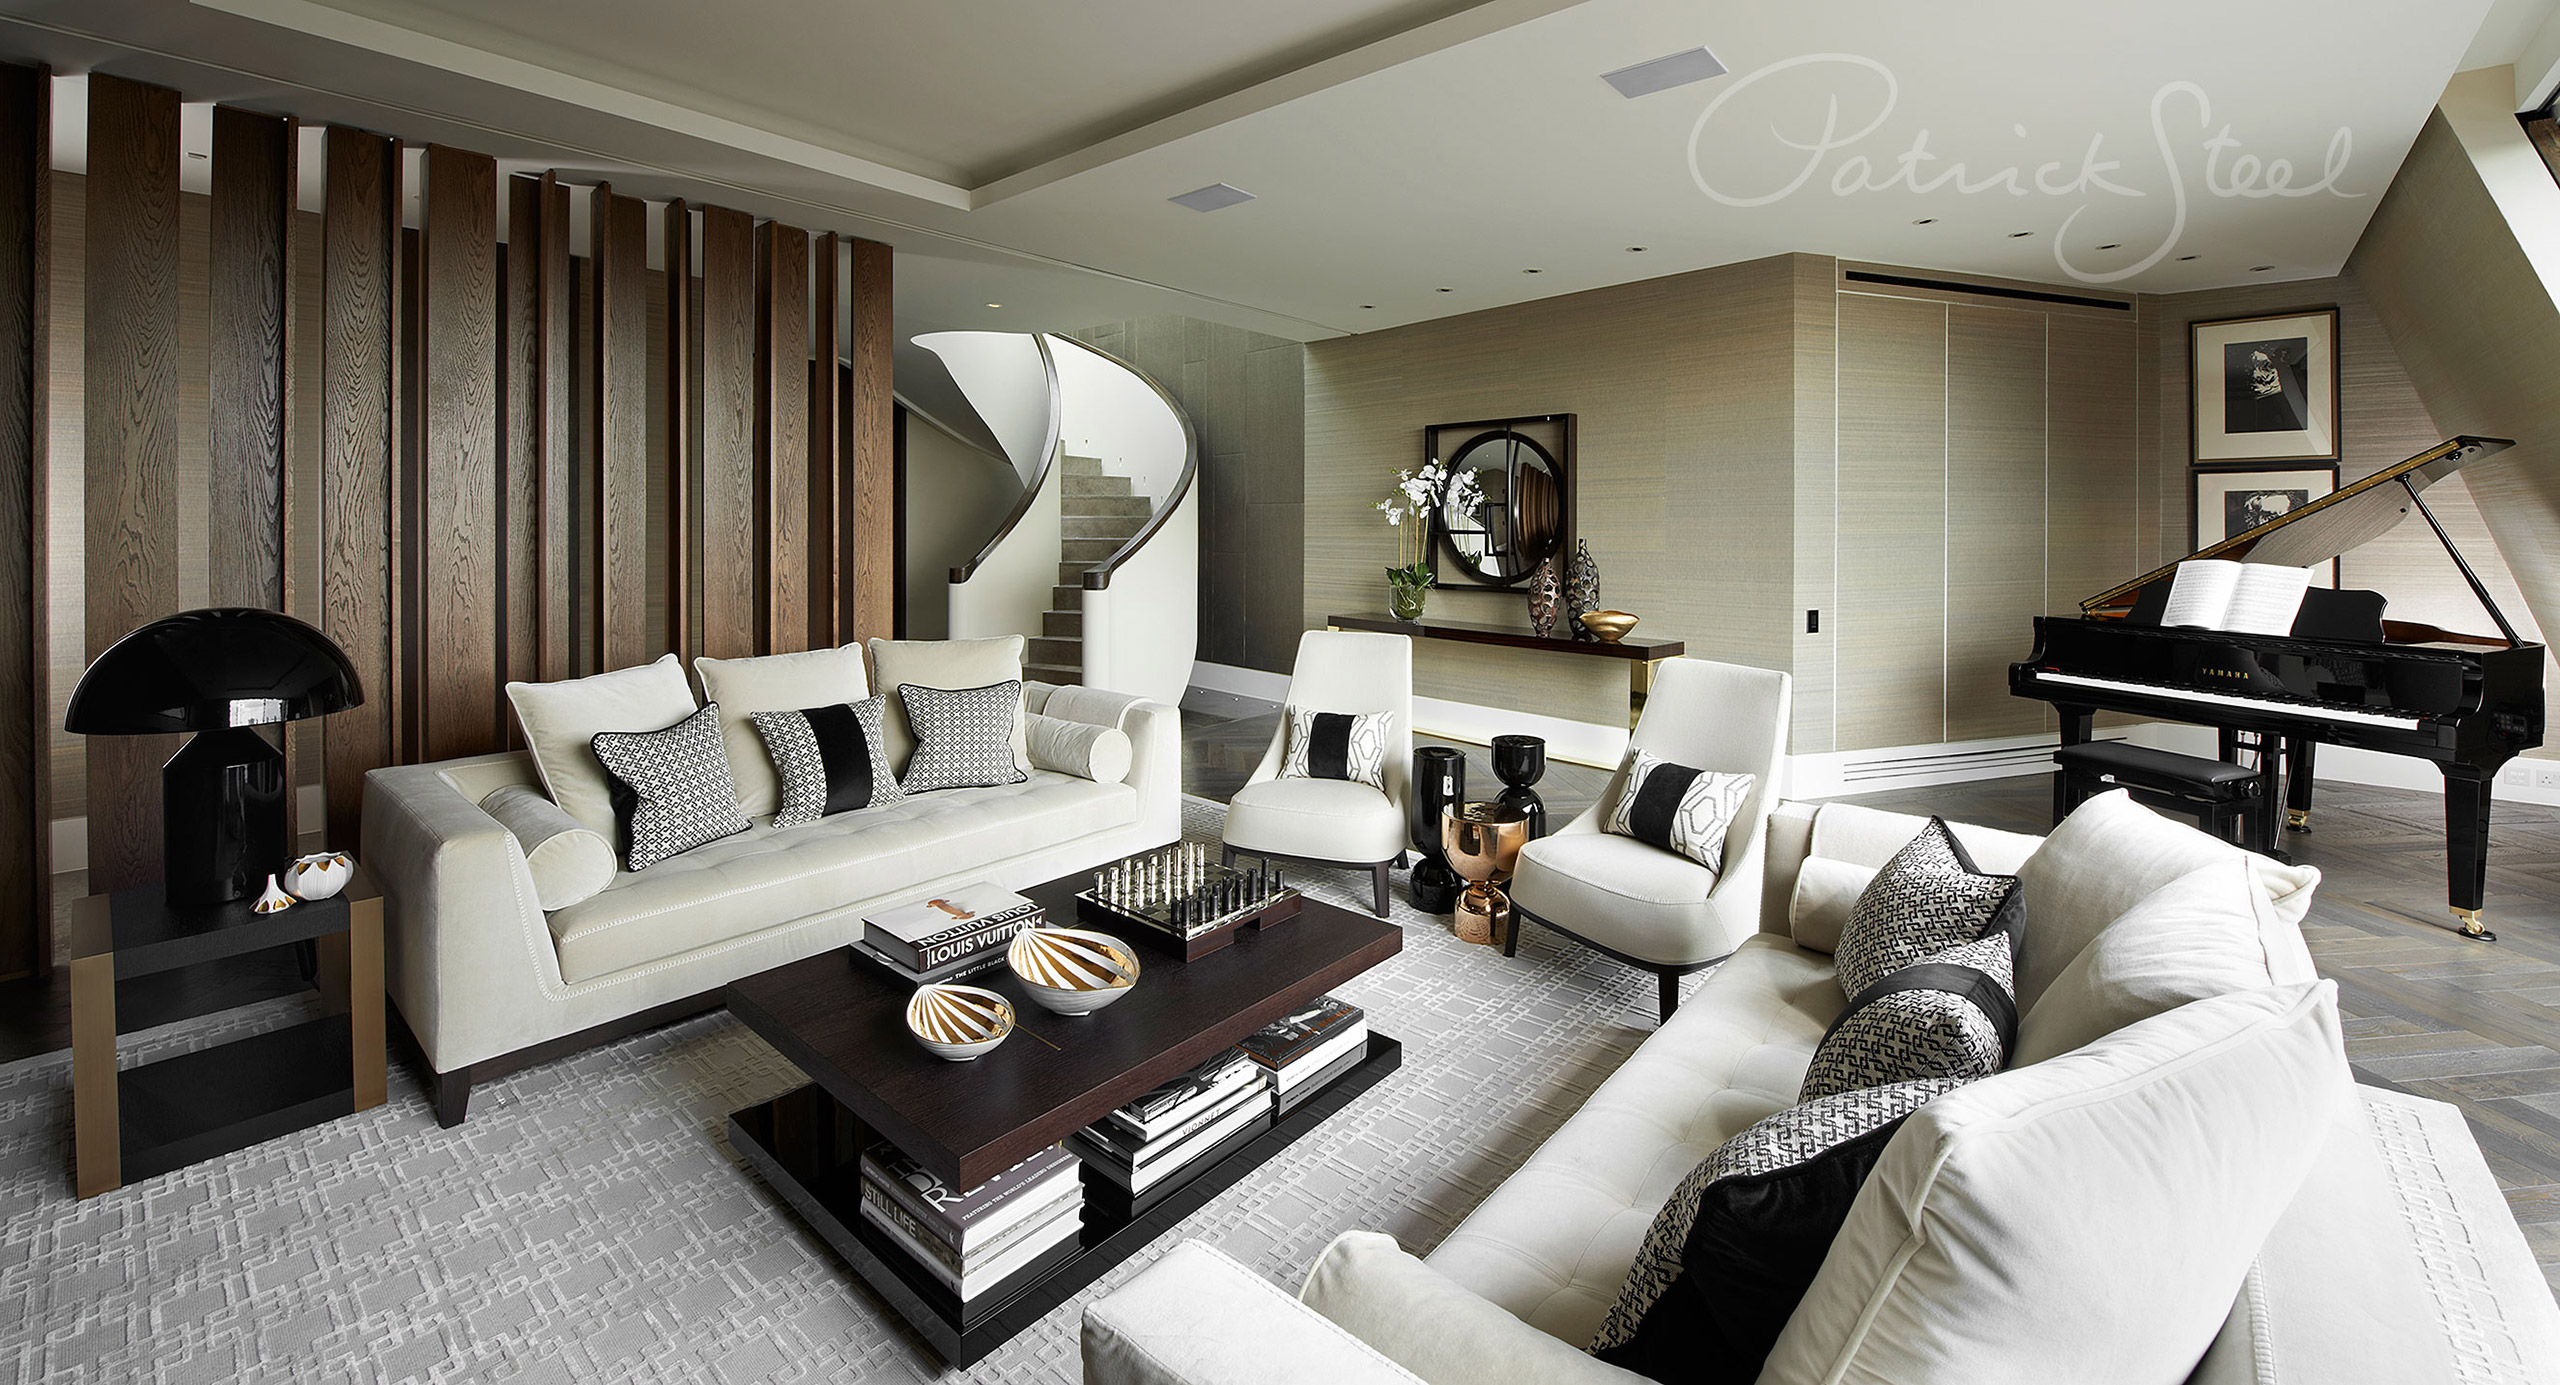 photograph interior living room patrick steel interiors photographer london